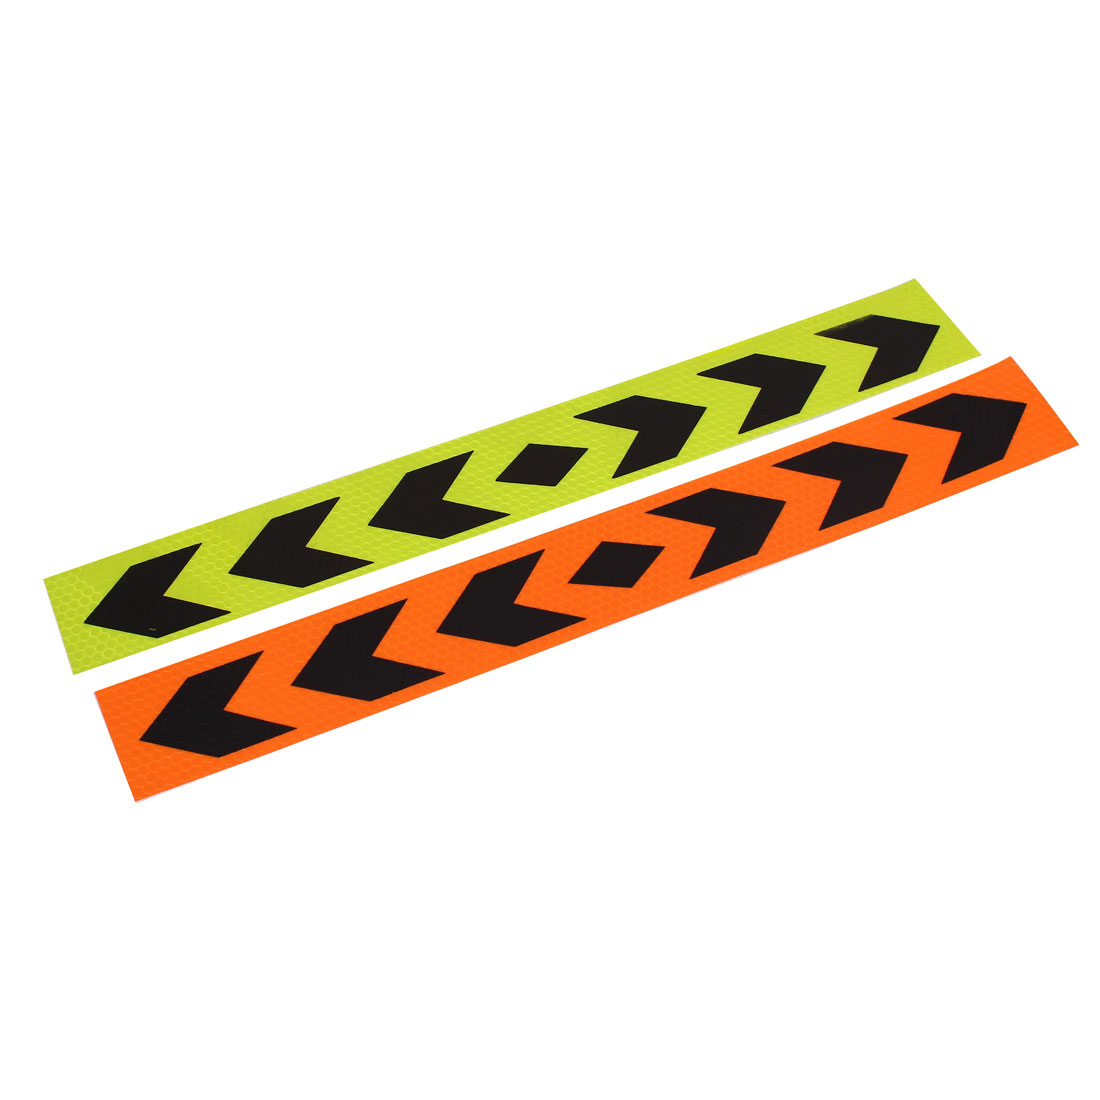 2pcs 40cm x 5cm Arrows Pattern Self Adhesive Car Truck Reflective Warning Sign Stickers Adorn Yellow Black Orange